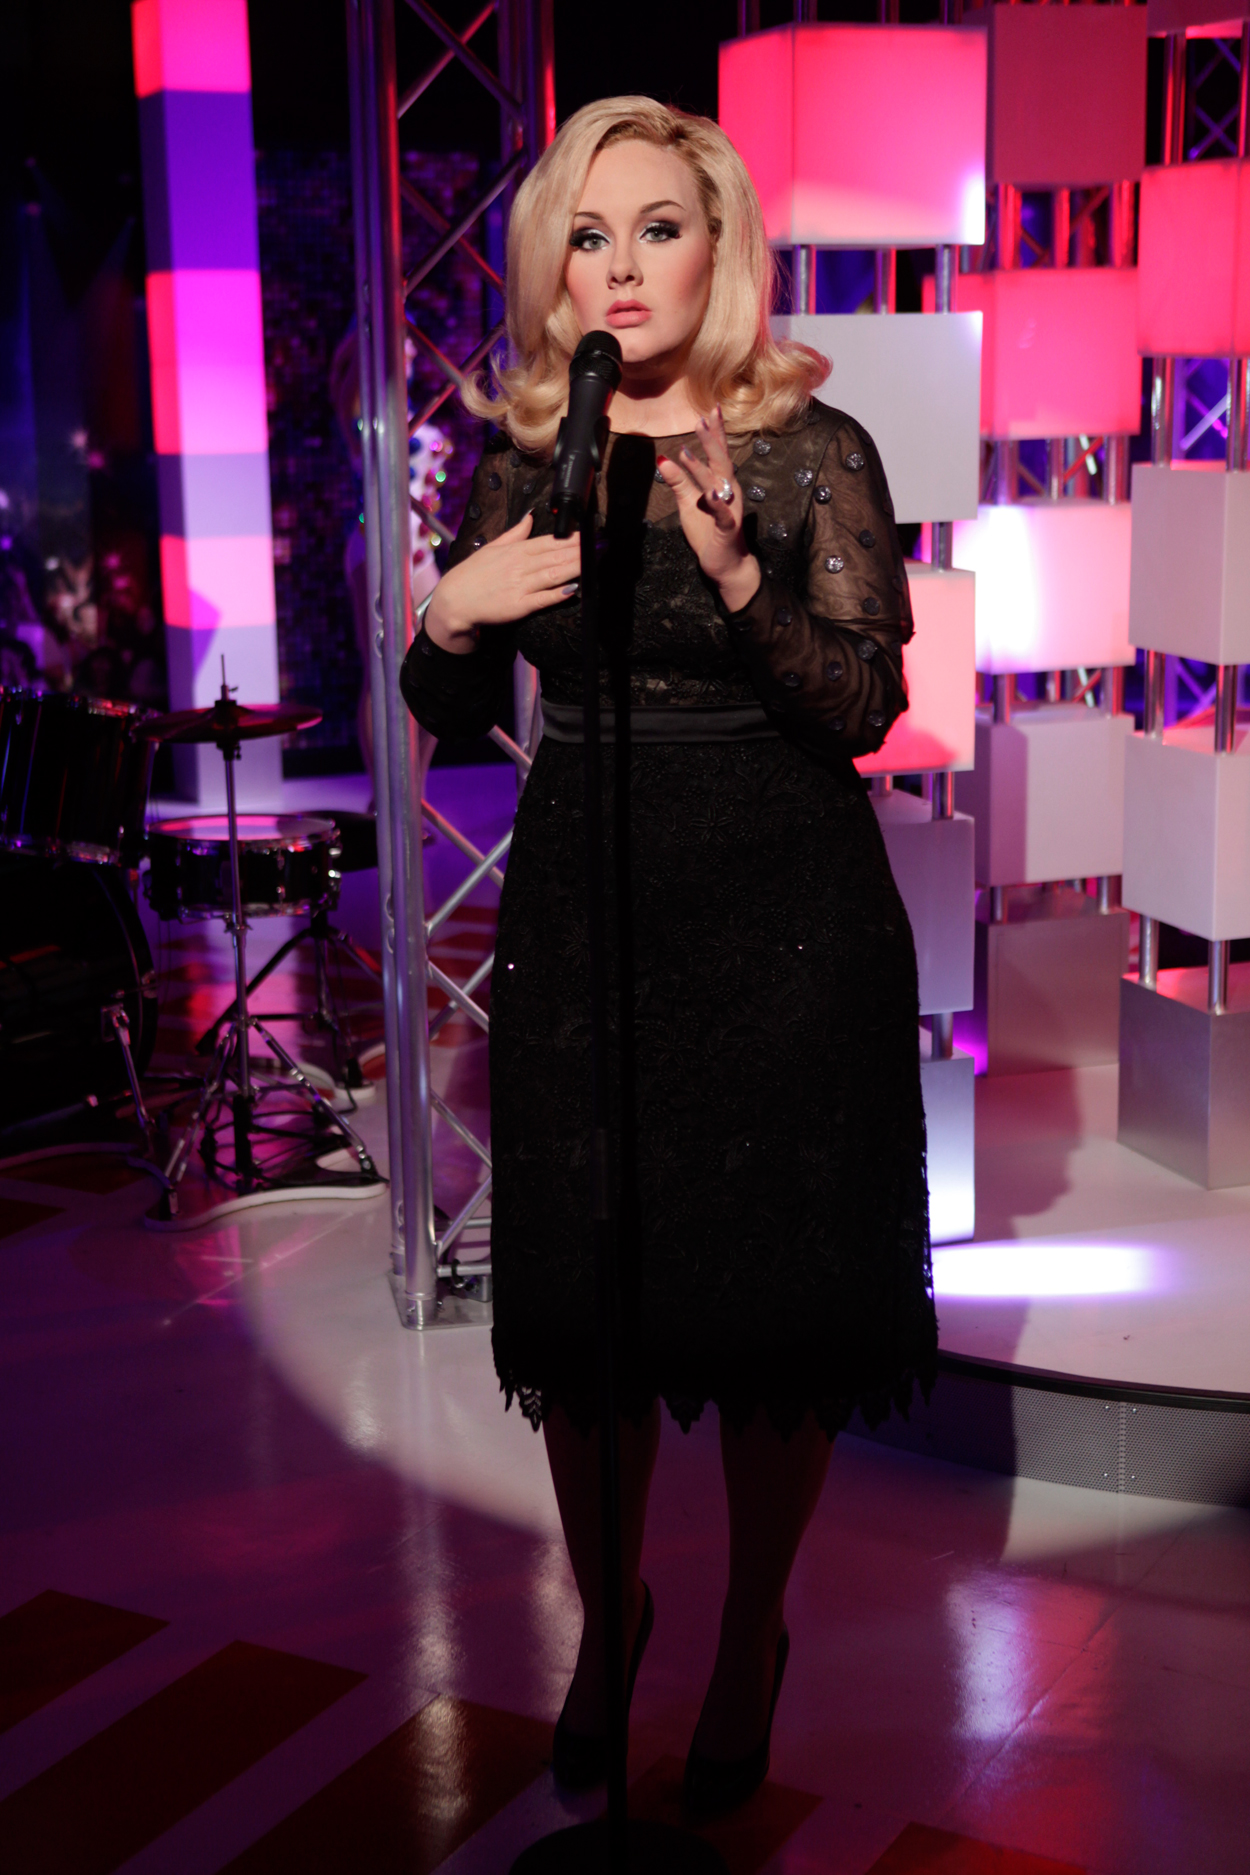 Adele's wax figure at Madame Tussauds is HELLA scary!